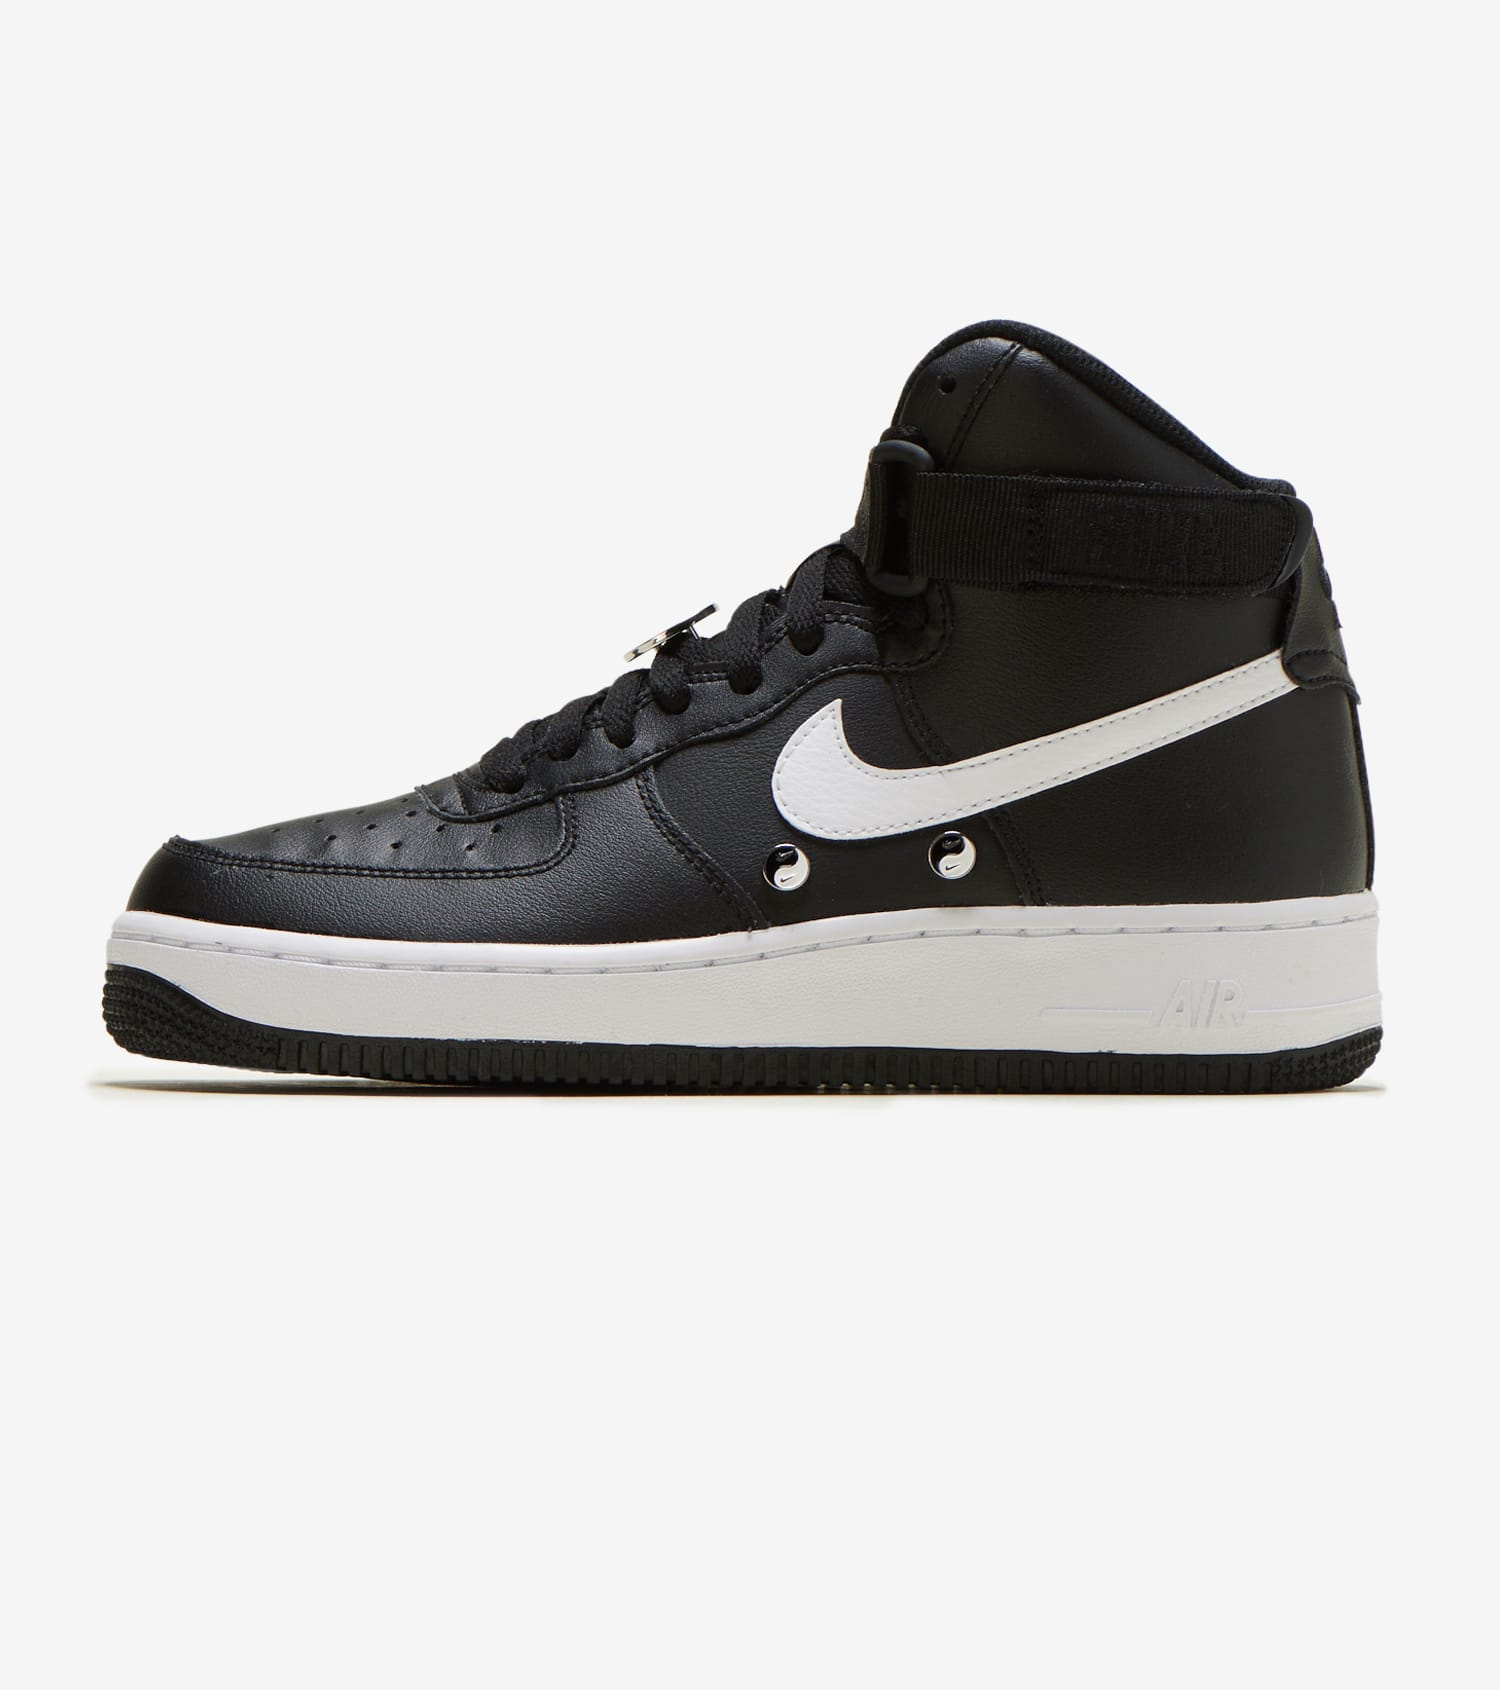 Nike Air Force One High Lifestyle Black Casual Shoes Buy